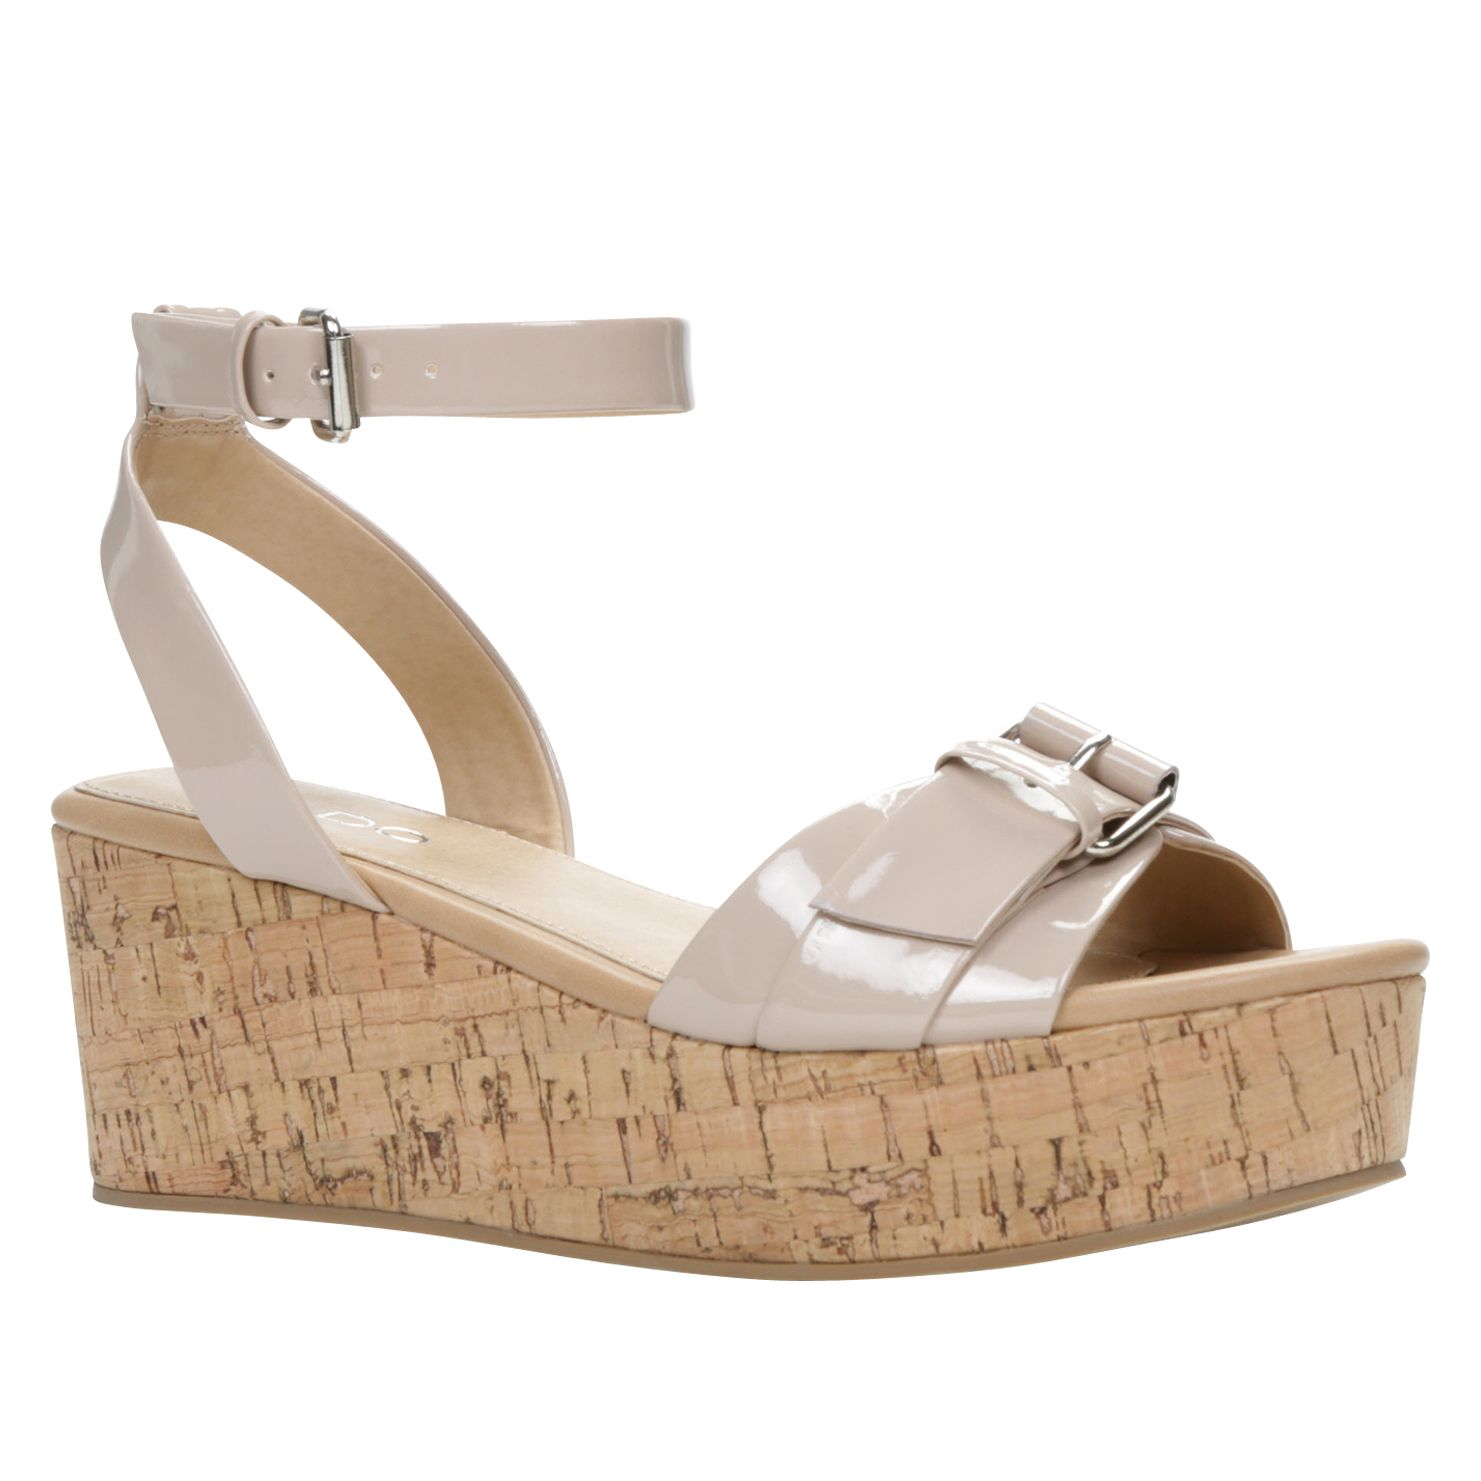 Waldrym wedge ankle strap sandals